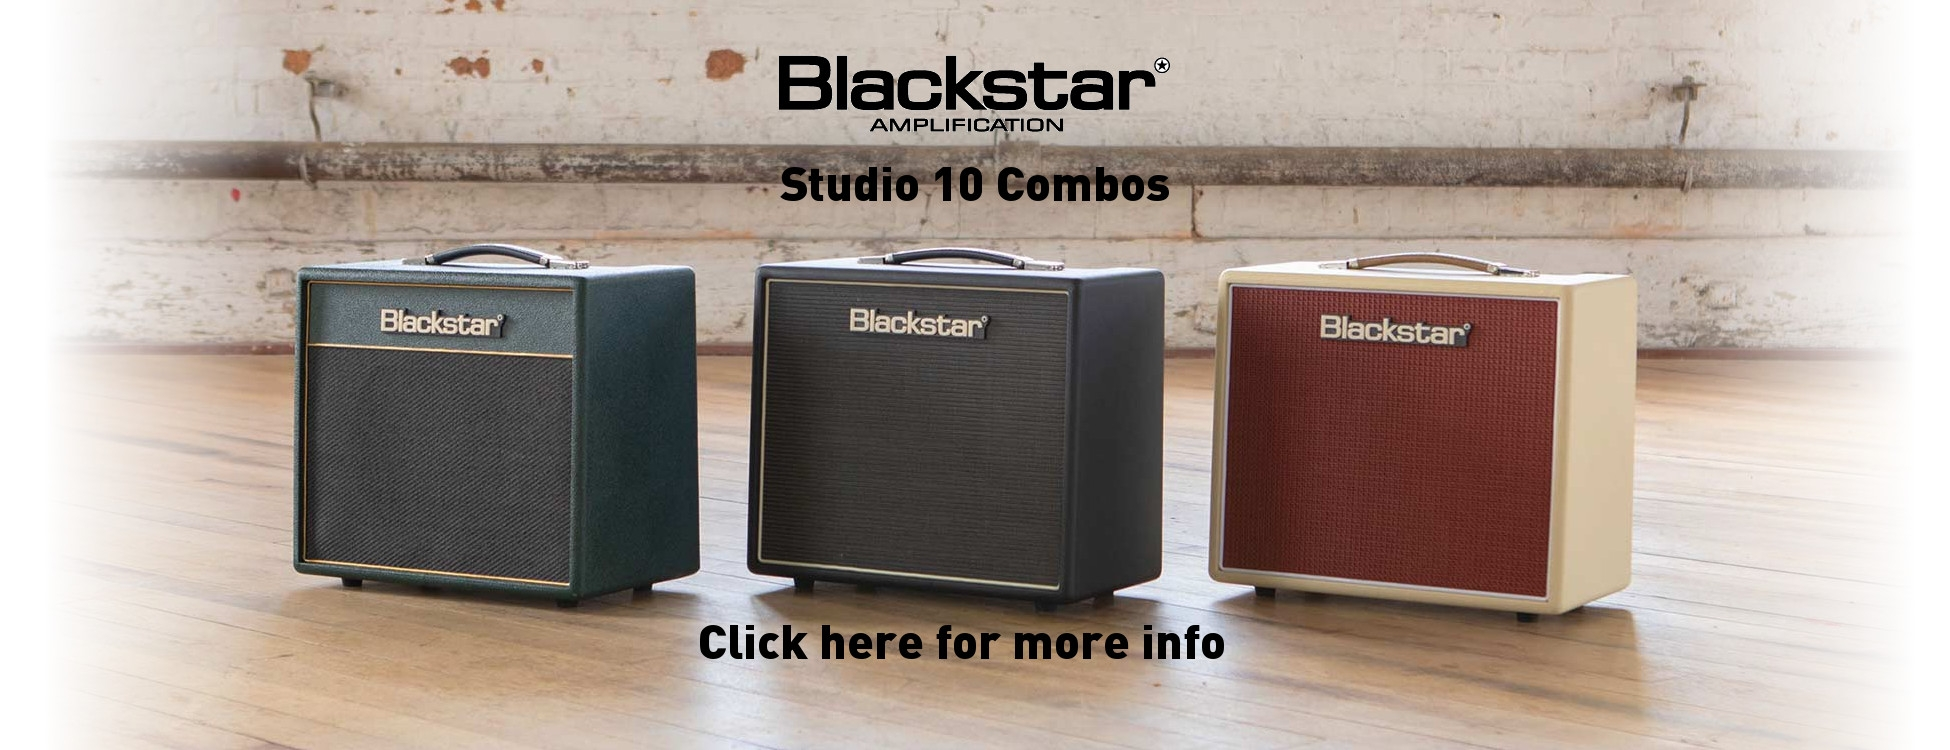 Blackstar Studio 10 Combo Amplifiers